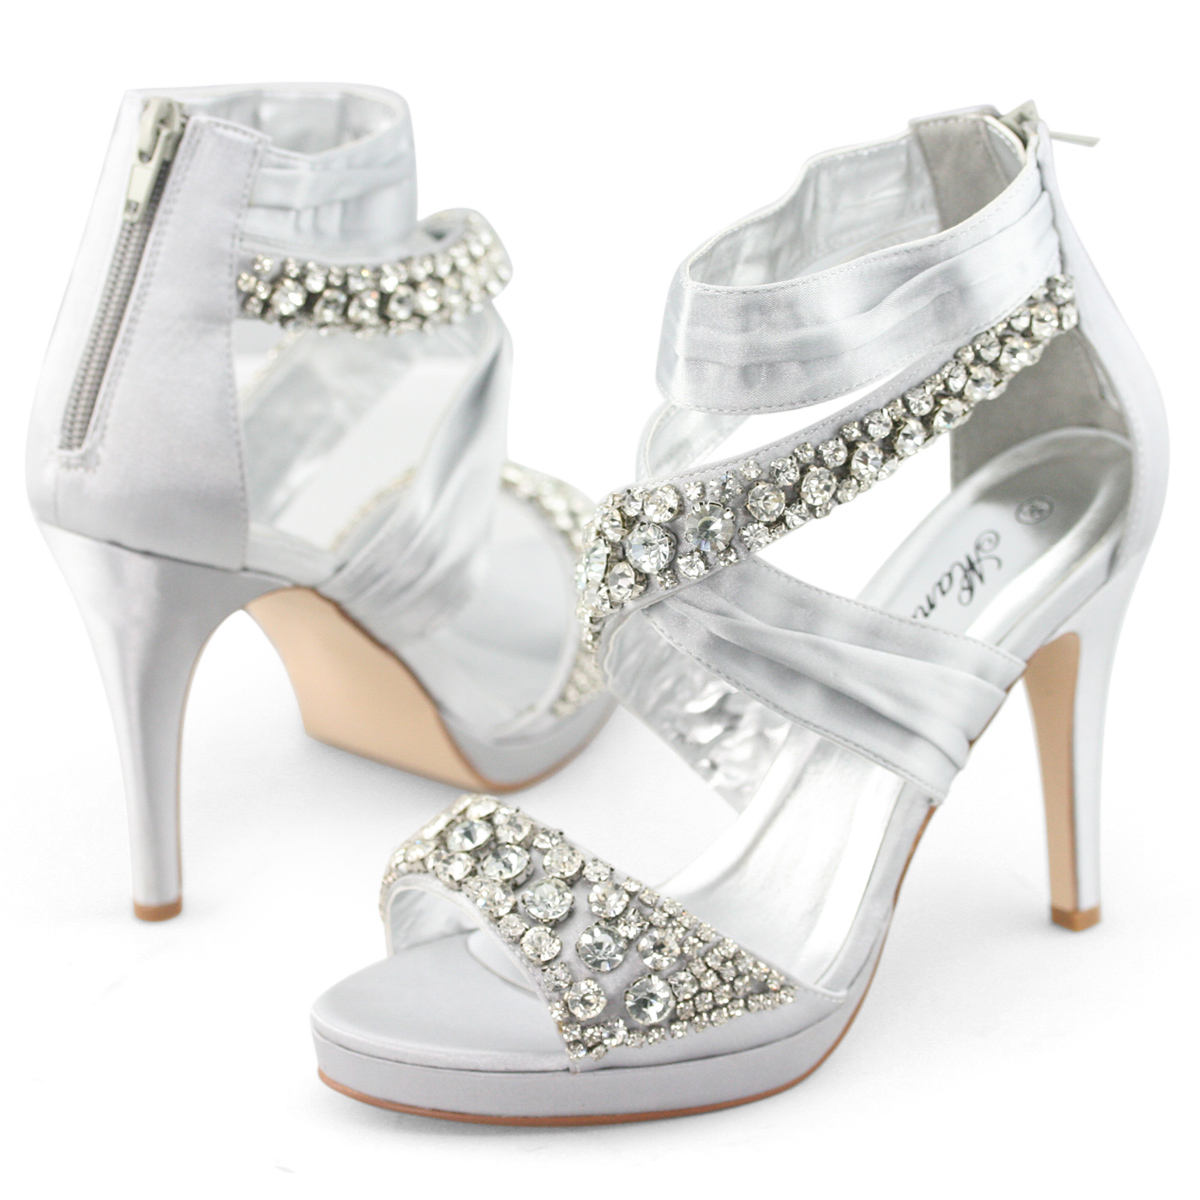 9809ab4a8e57 Silver Womens get dressed nighttime shoes